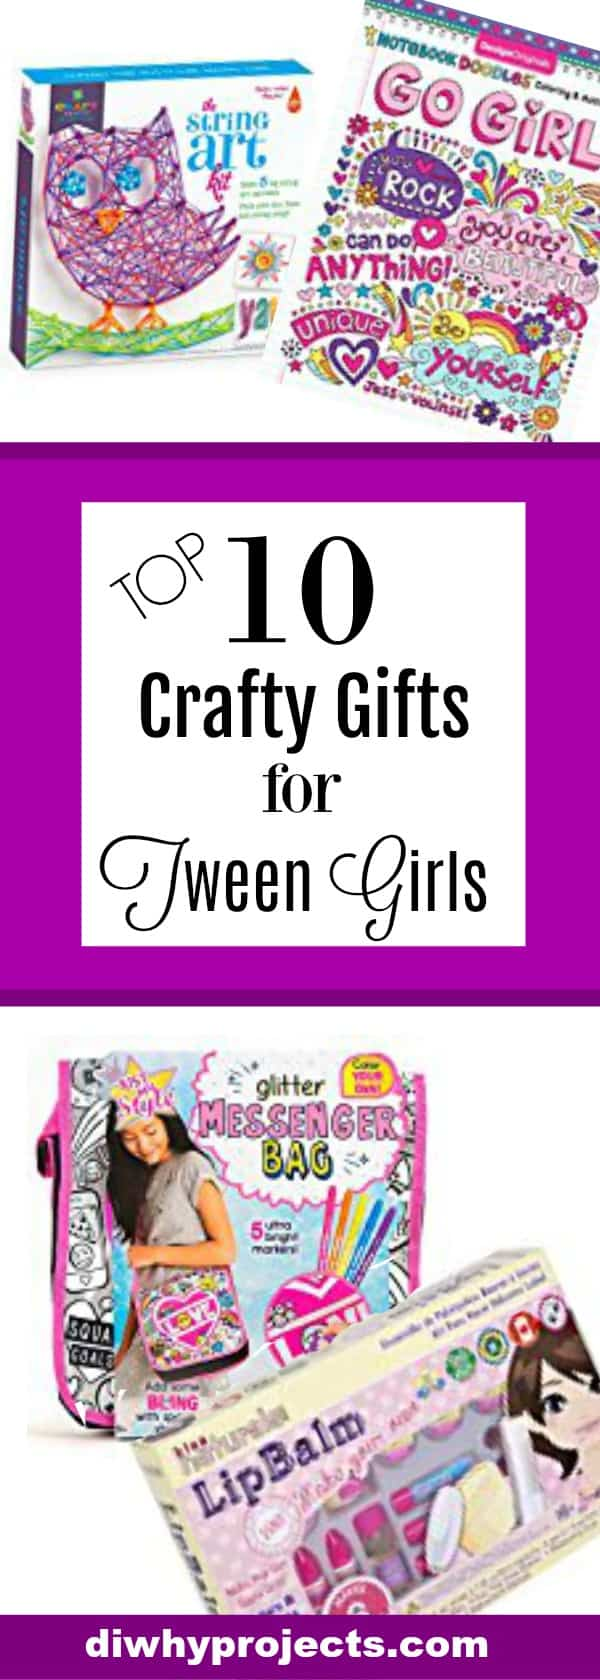 Image Of Christmas Gifts For Age 8 Girl 2018 Bday Xmas Gift Ideas ...